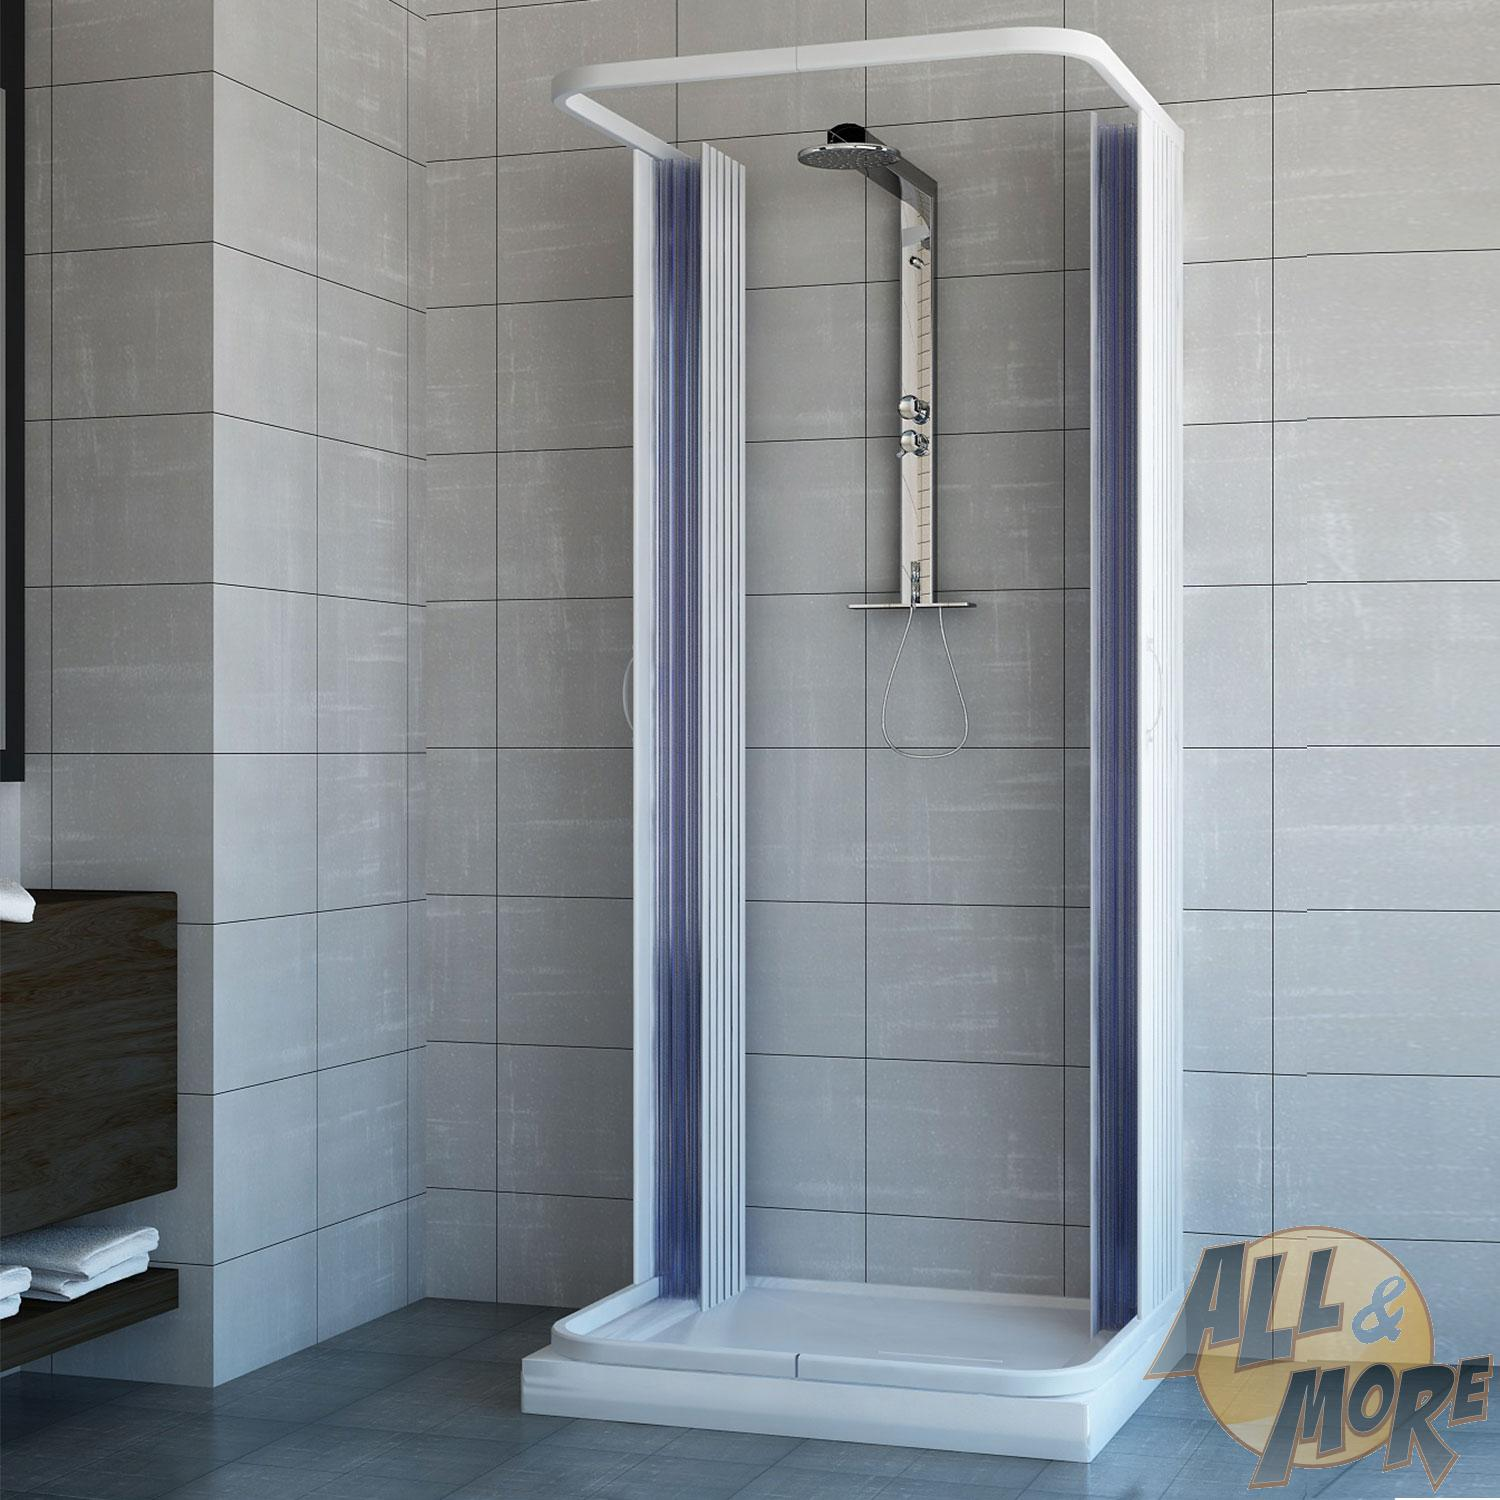 Shower Enclosure 3 Sided Central Open Quadrant Cubicle